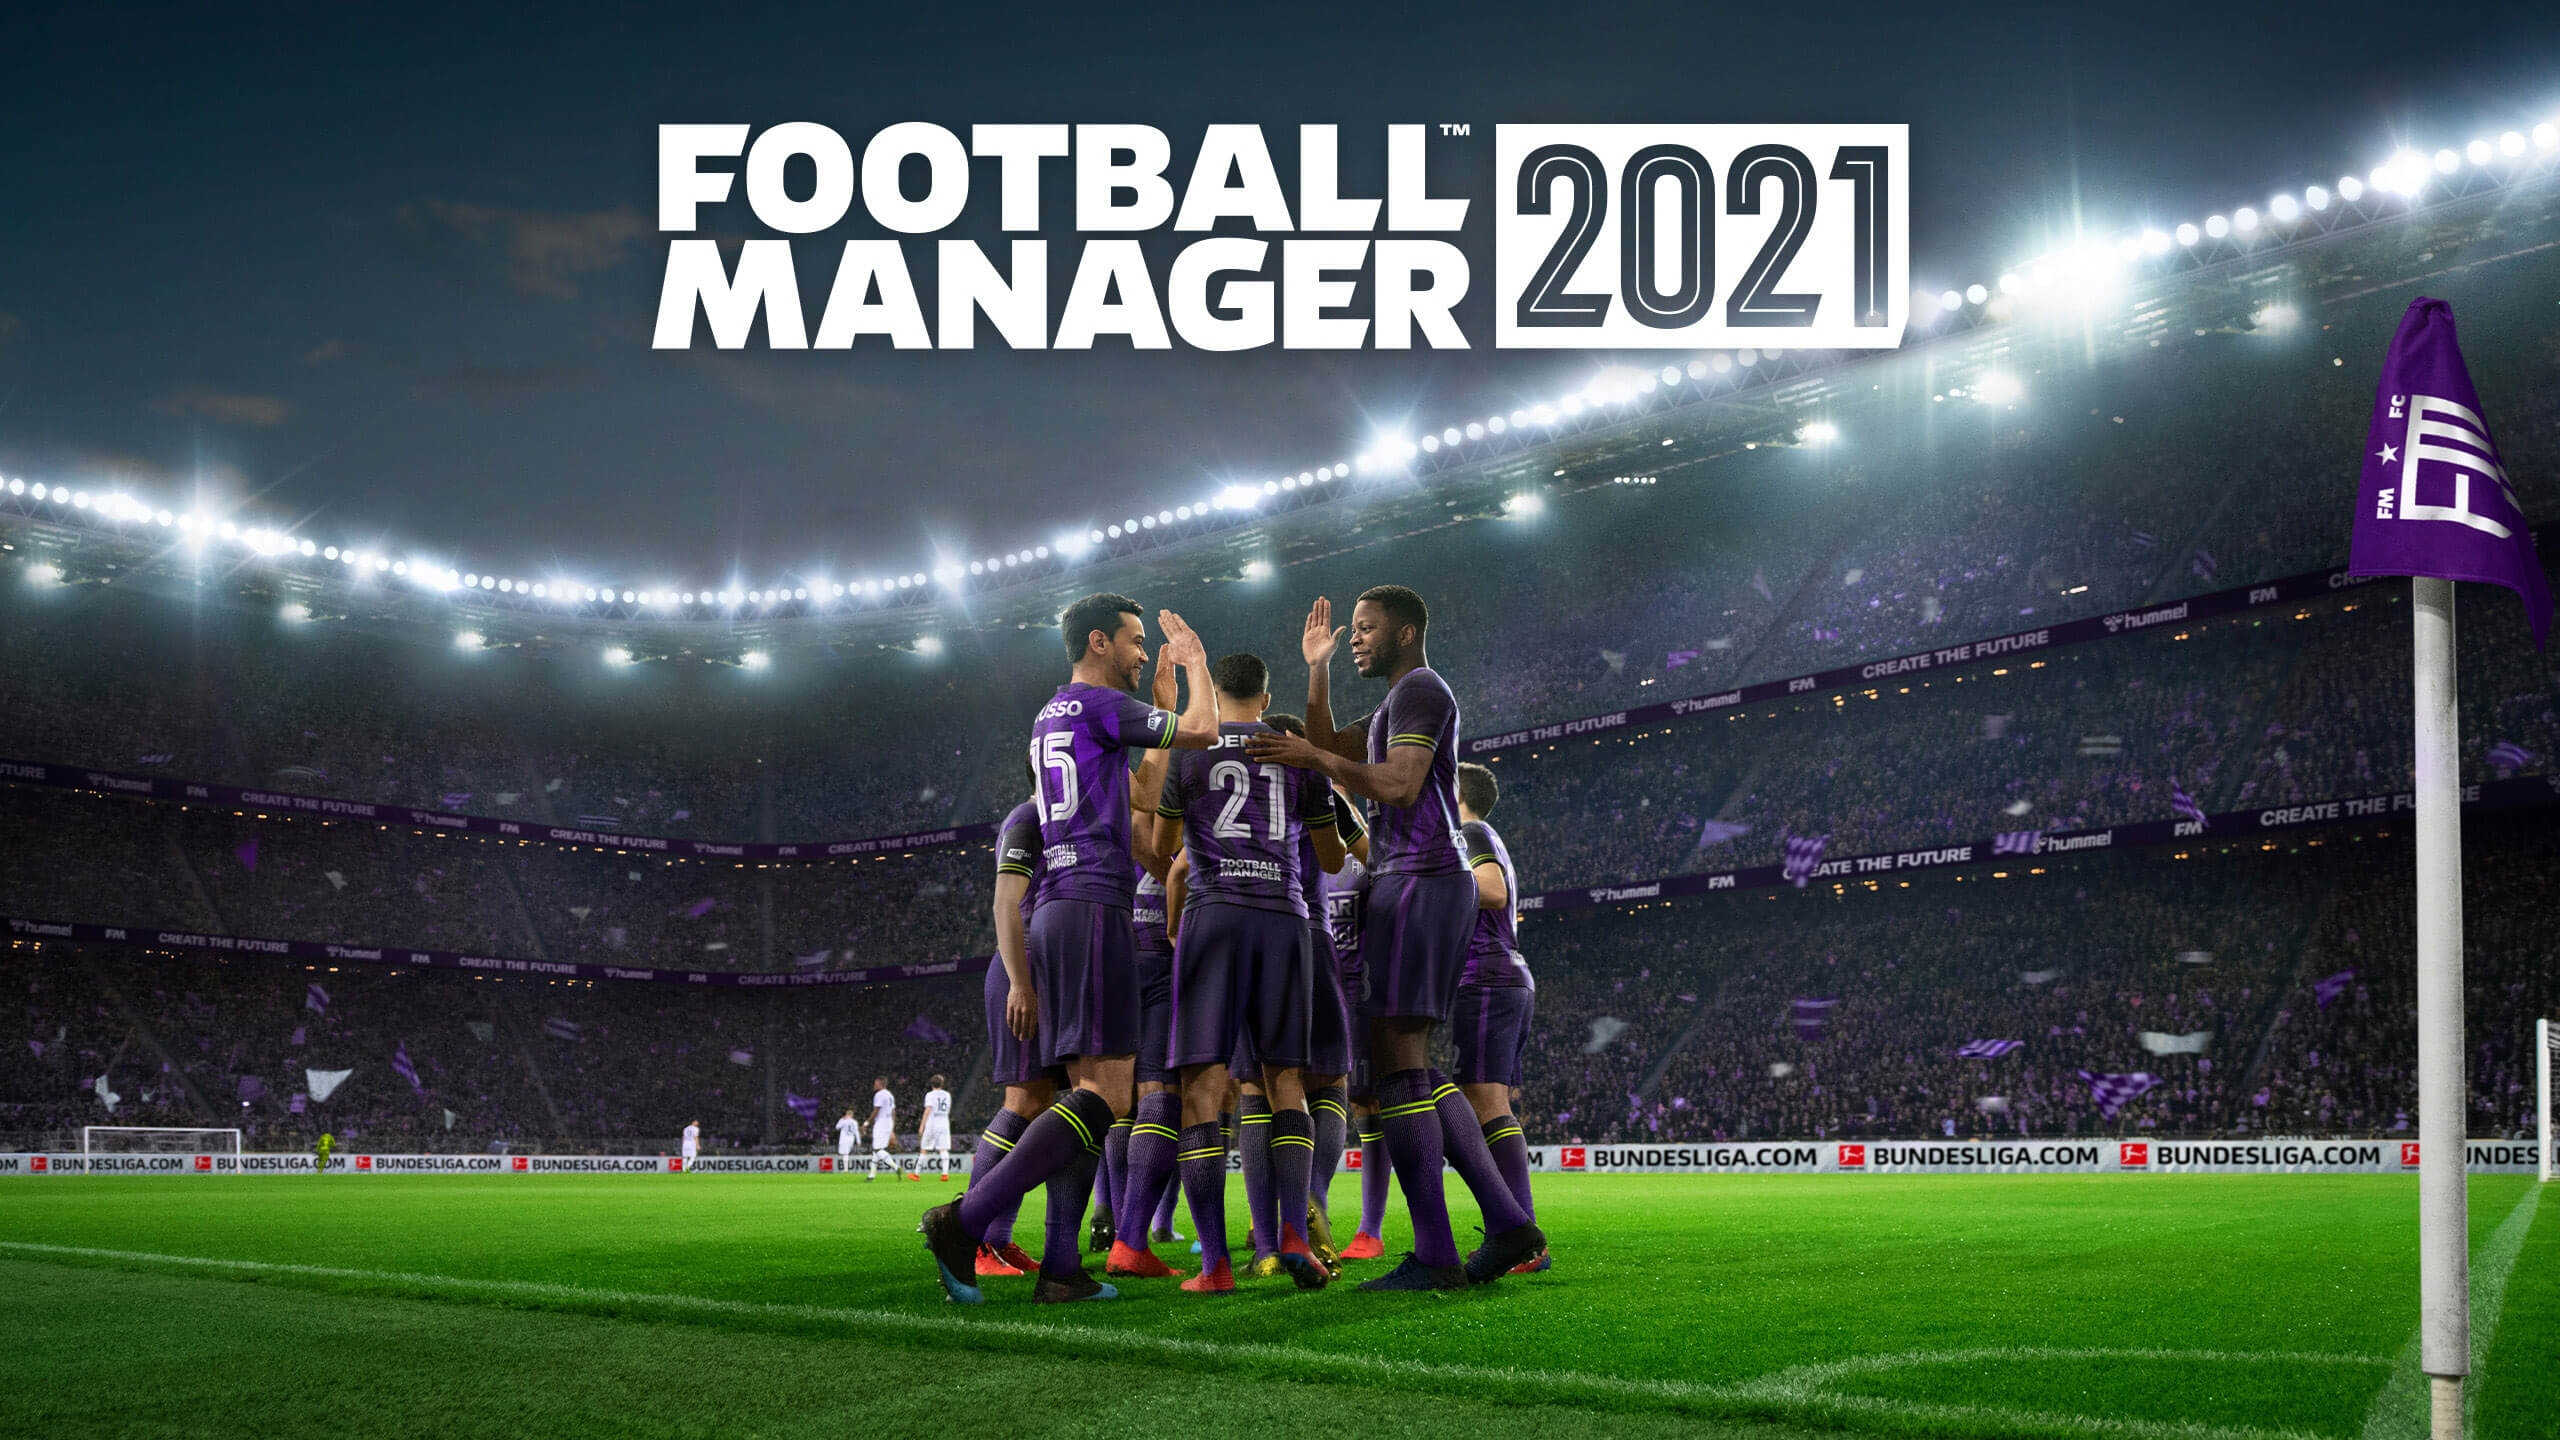 Oferta Football Manager 2021